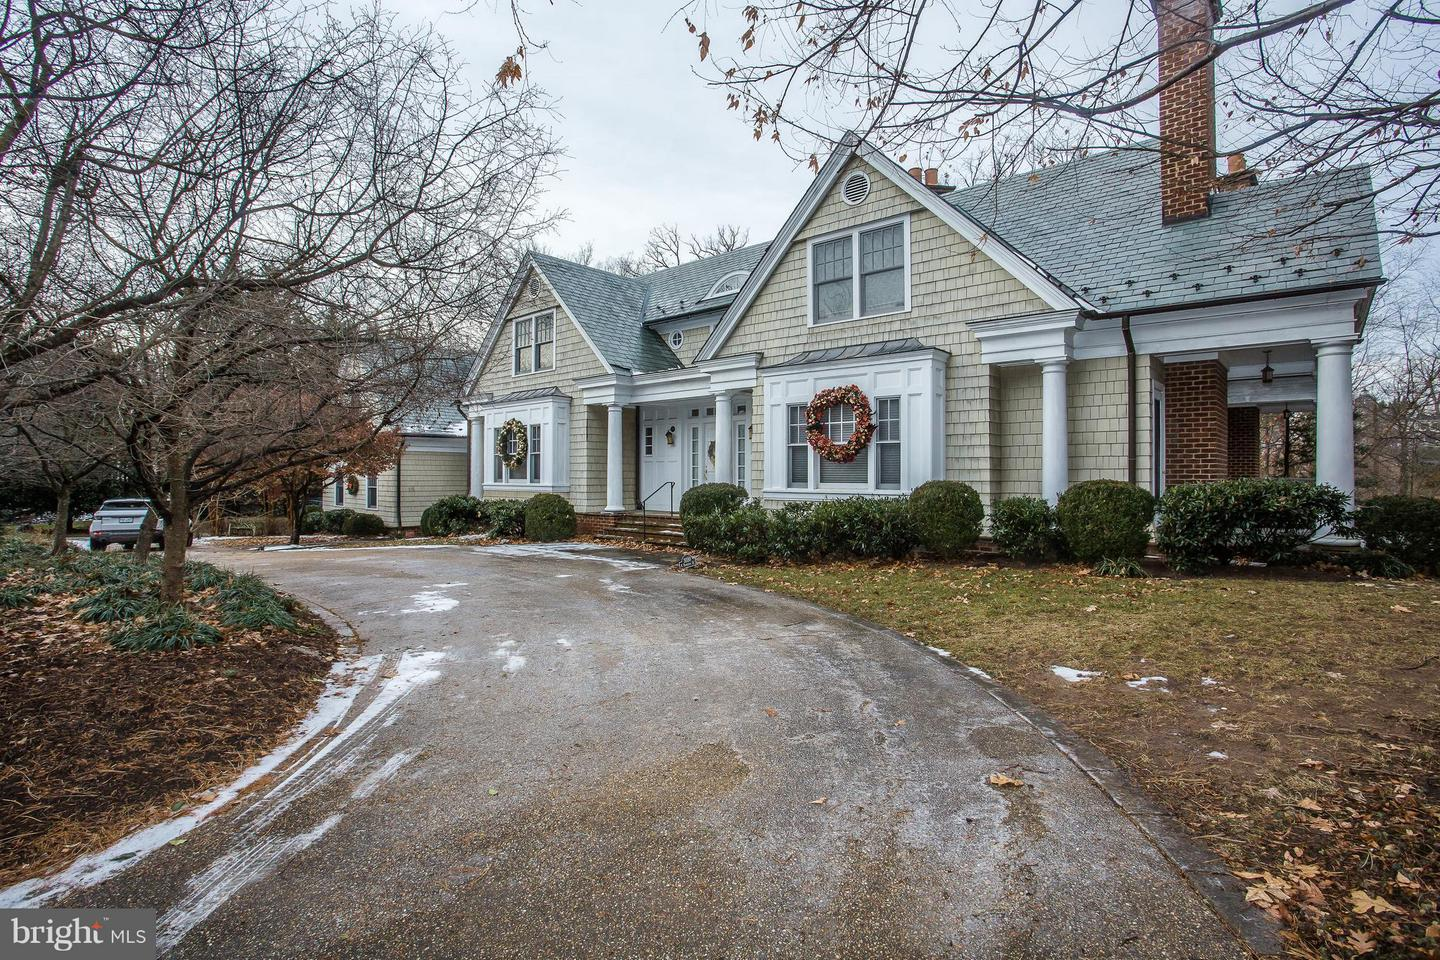 Single Family Home for Sale at 3030 Dickerson St N 3030 Dickerson St N Arlington, Virginia 22207 United States